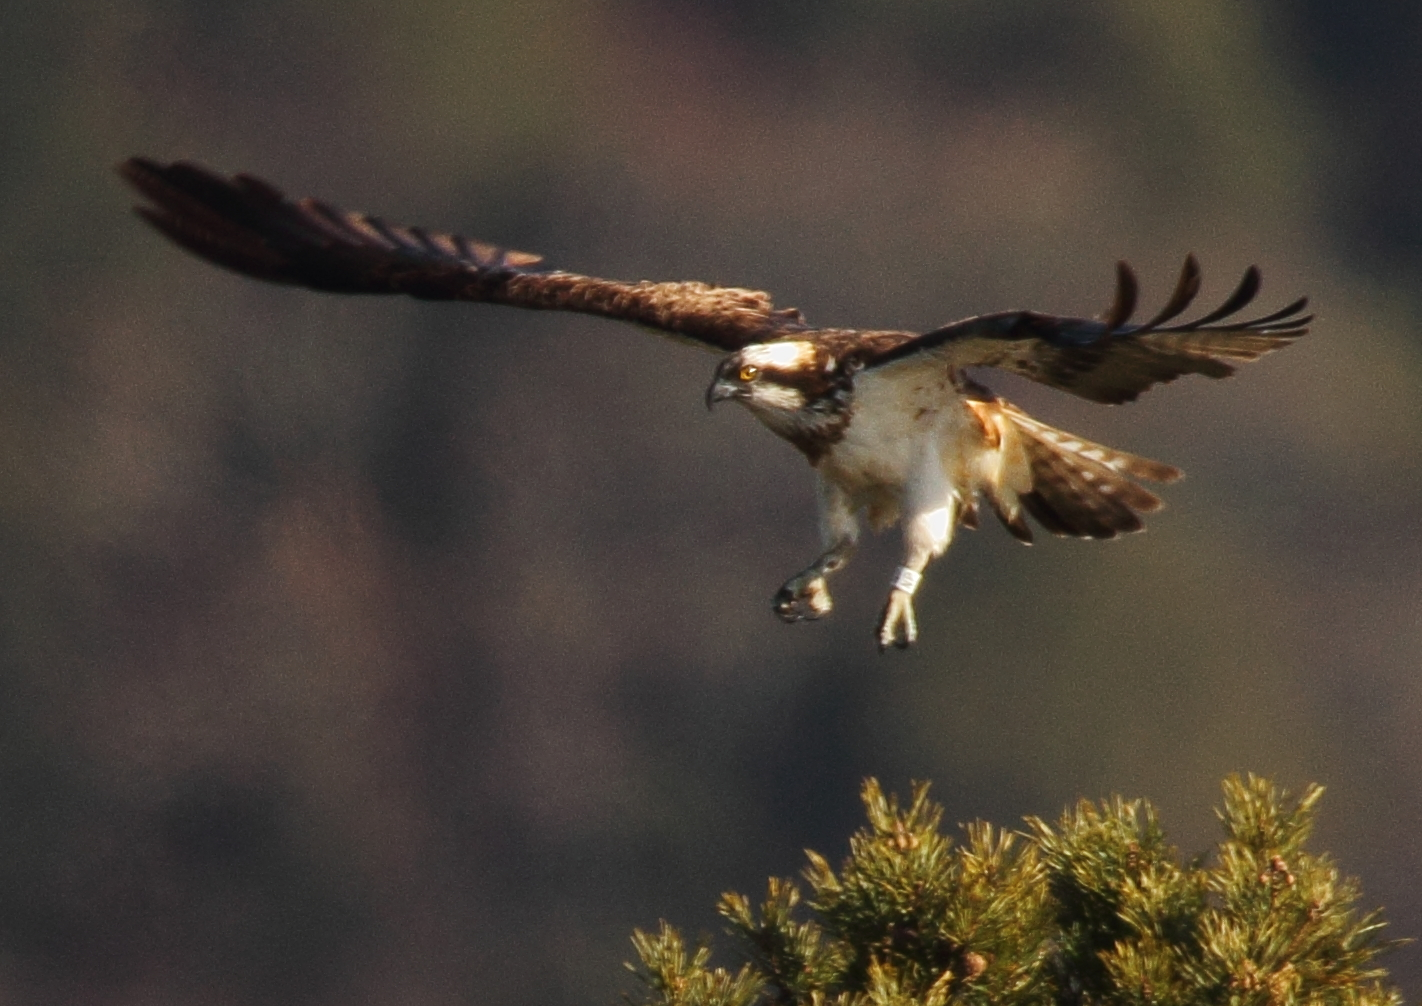 Intruder Osprey at Loch of the Lowes Neil Macdonald 2013